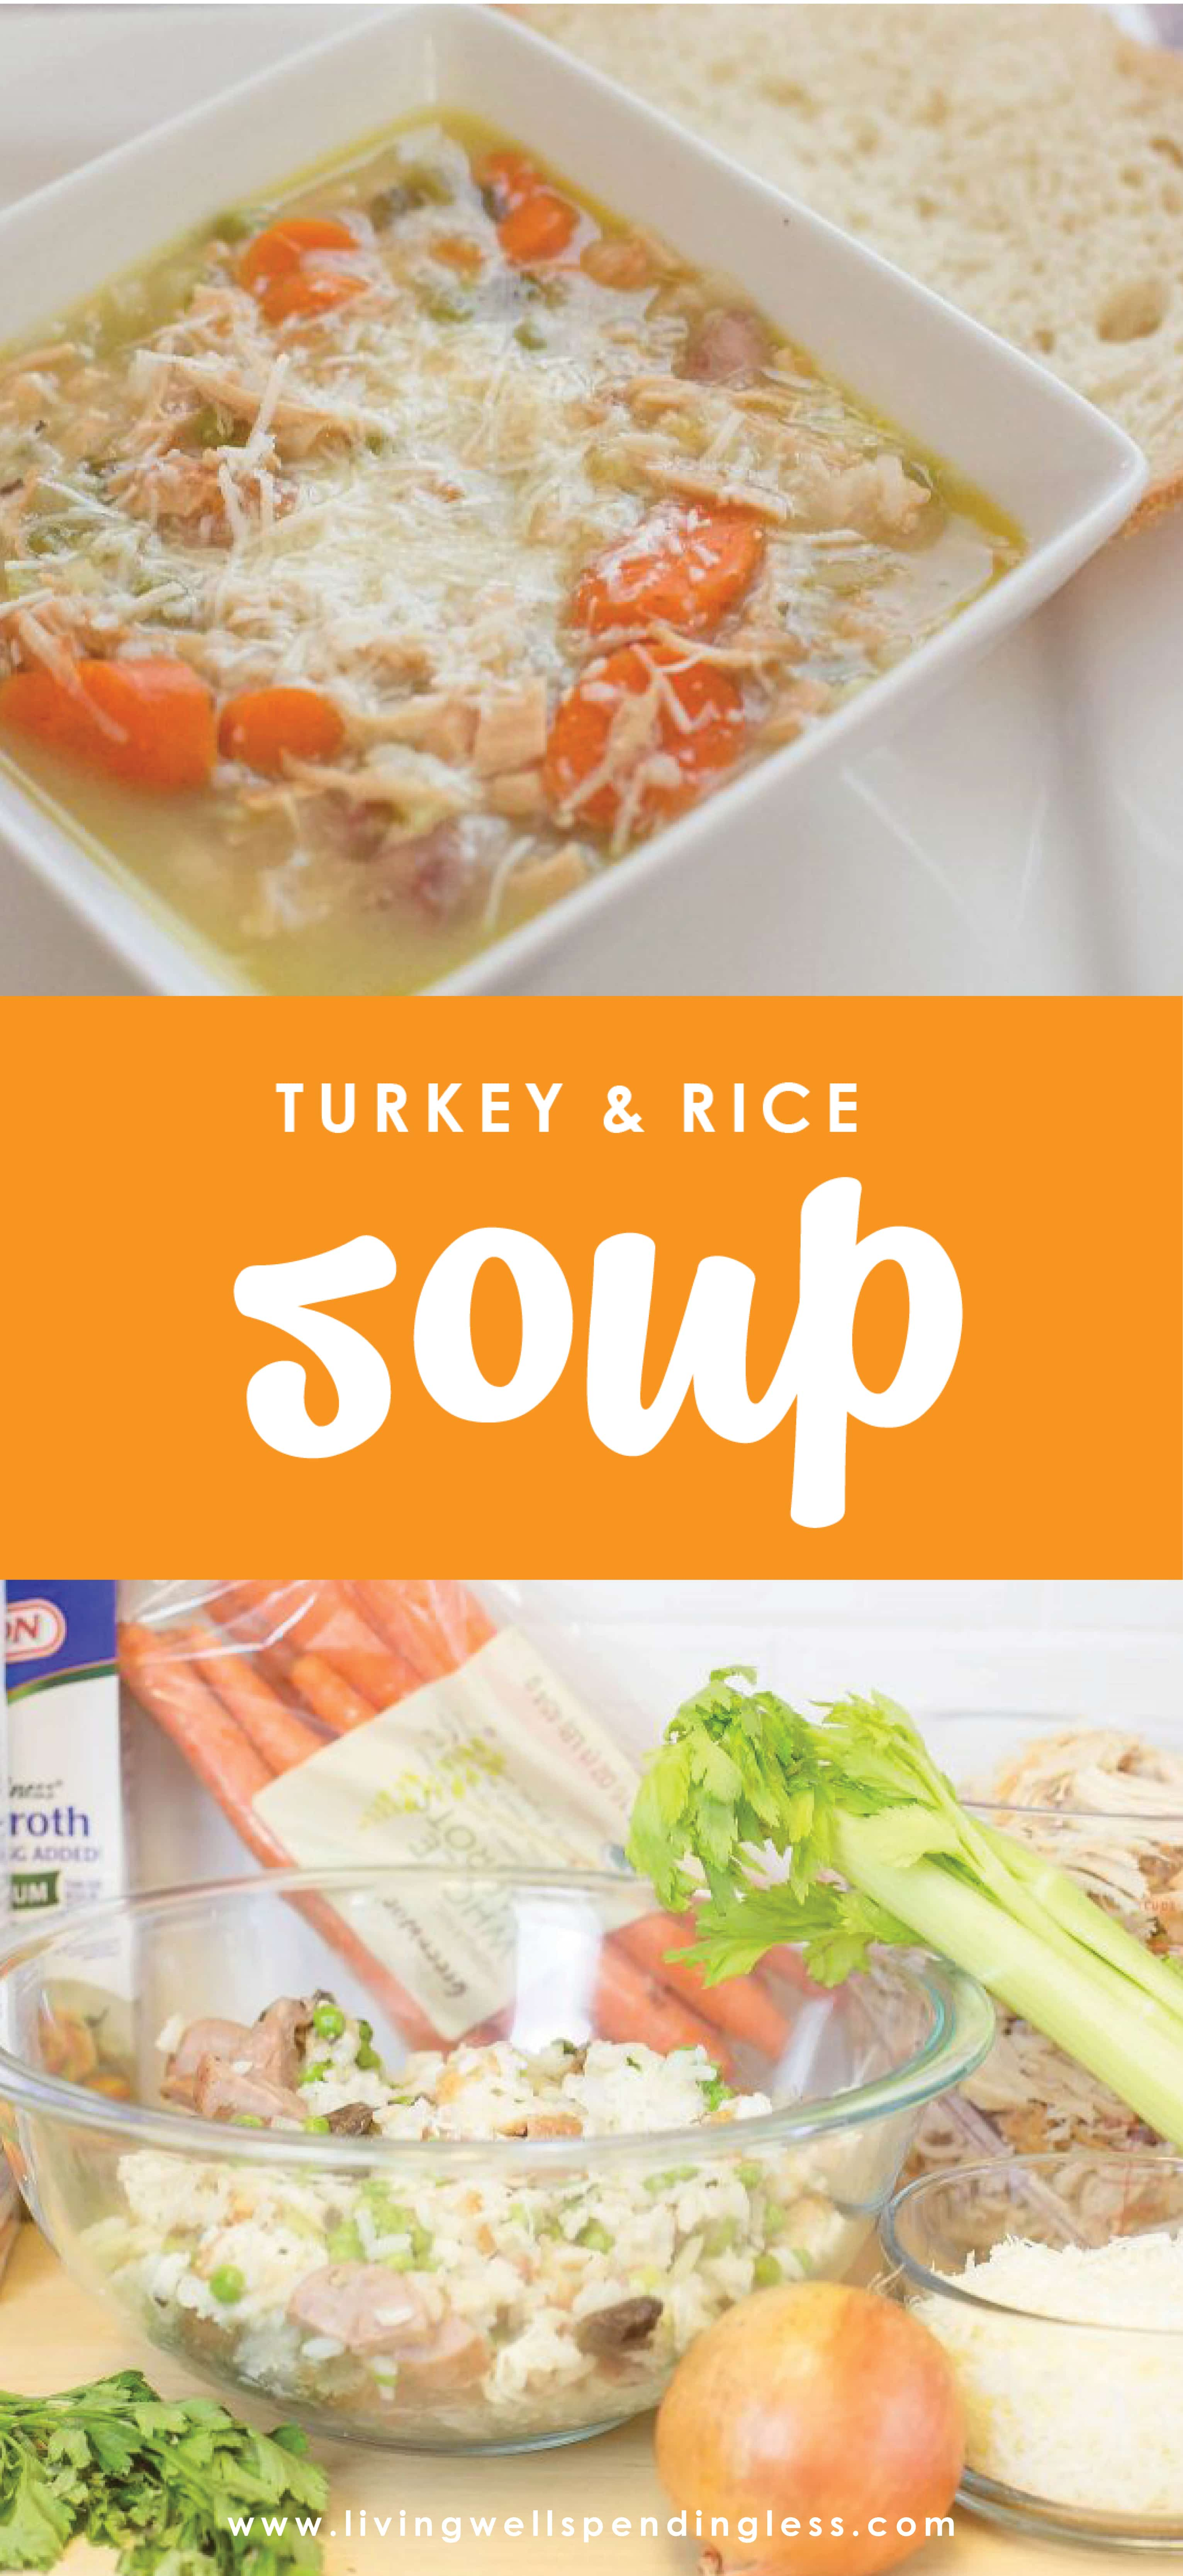 This deliciously simple Turkey & Rice Soup is the perfect way to use up all those holiday leftovers, and with just a few super simple ingredients, comes together in minutes (and is freezer friendly too!)